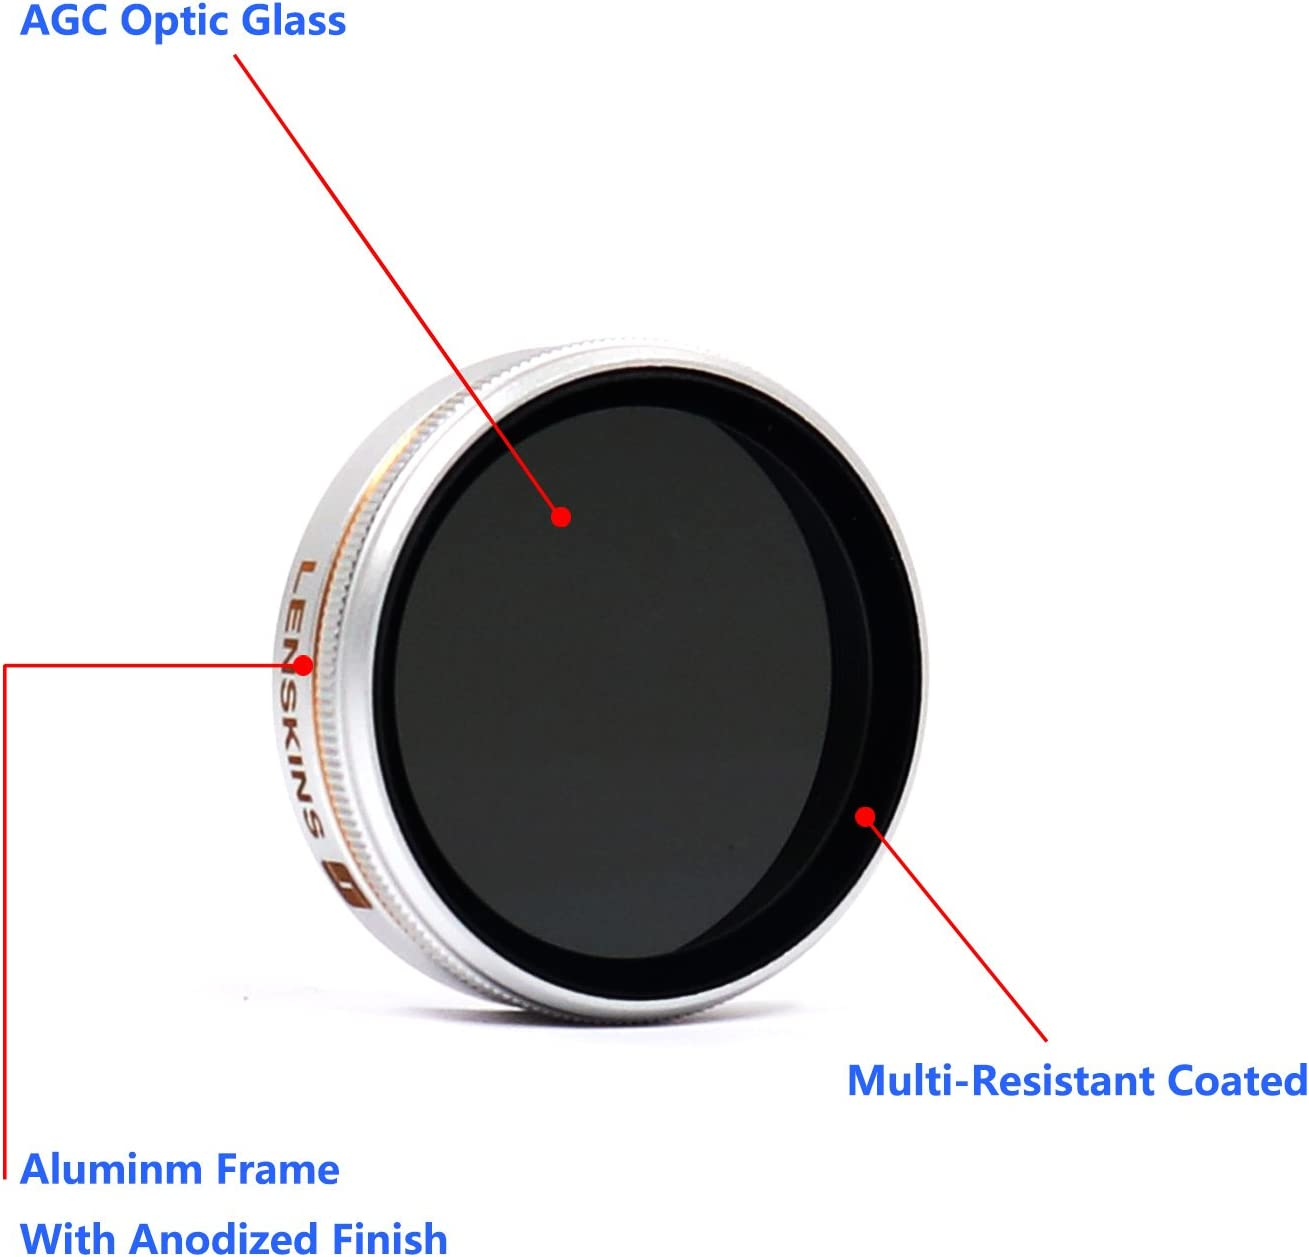 LENSKINS MRC ND4-CPL Filter Compatible DJI AGC Optics,Multi-Resistant Coated with Storage Case /& Lens Cloth Replacement for DJI Phantom 4//Phantom 3 Professional//Phantom 3 Advanced Filter